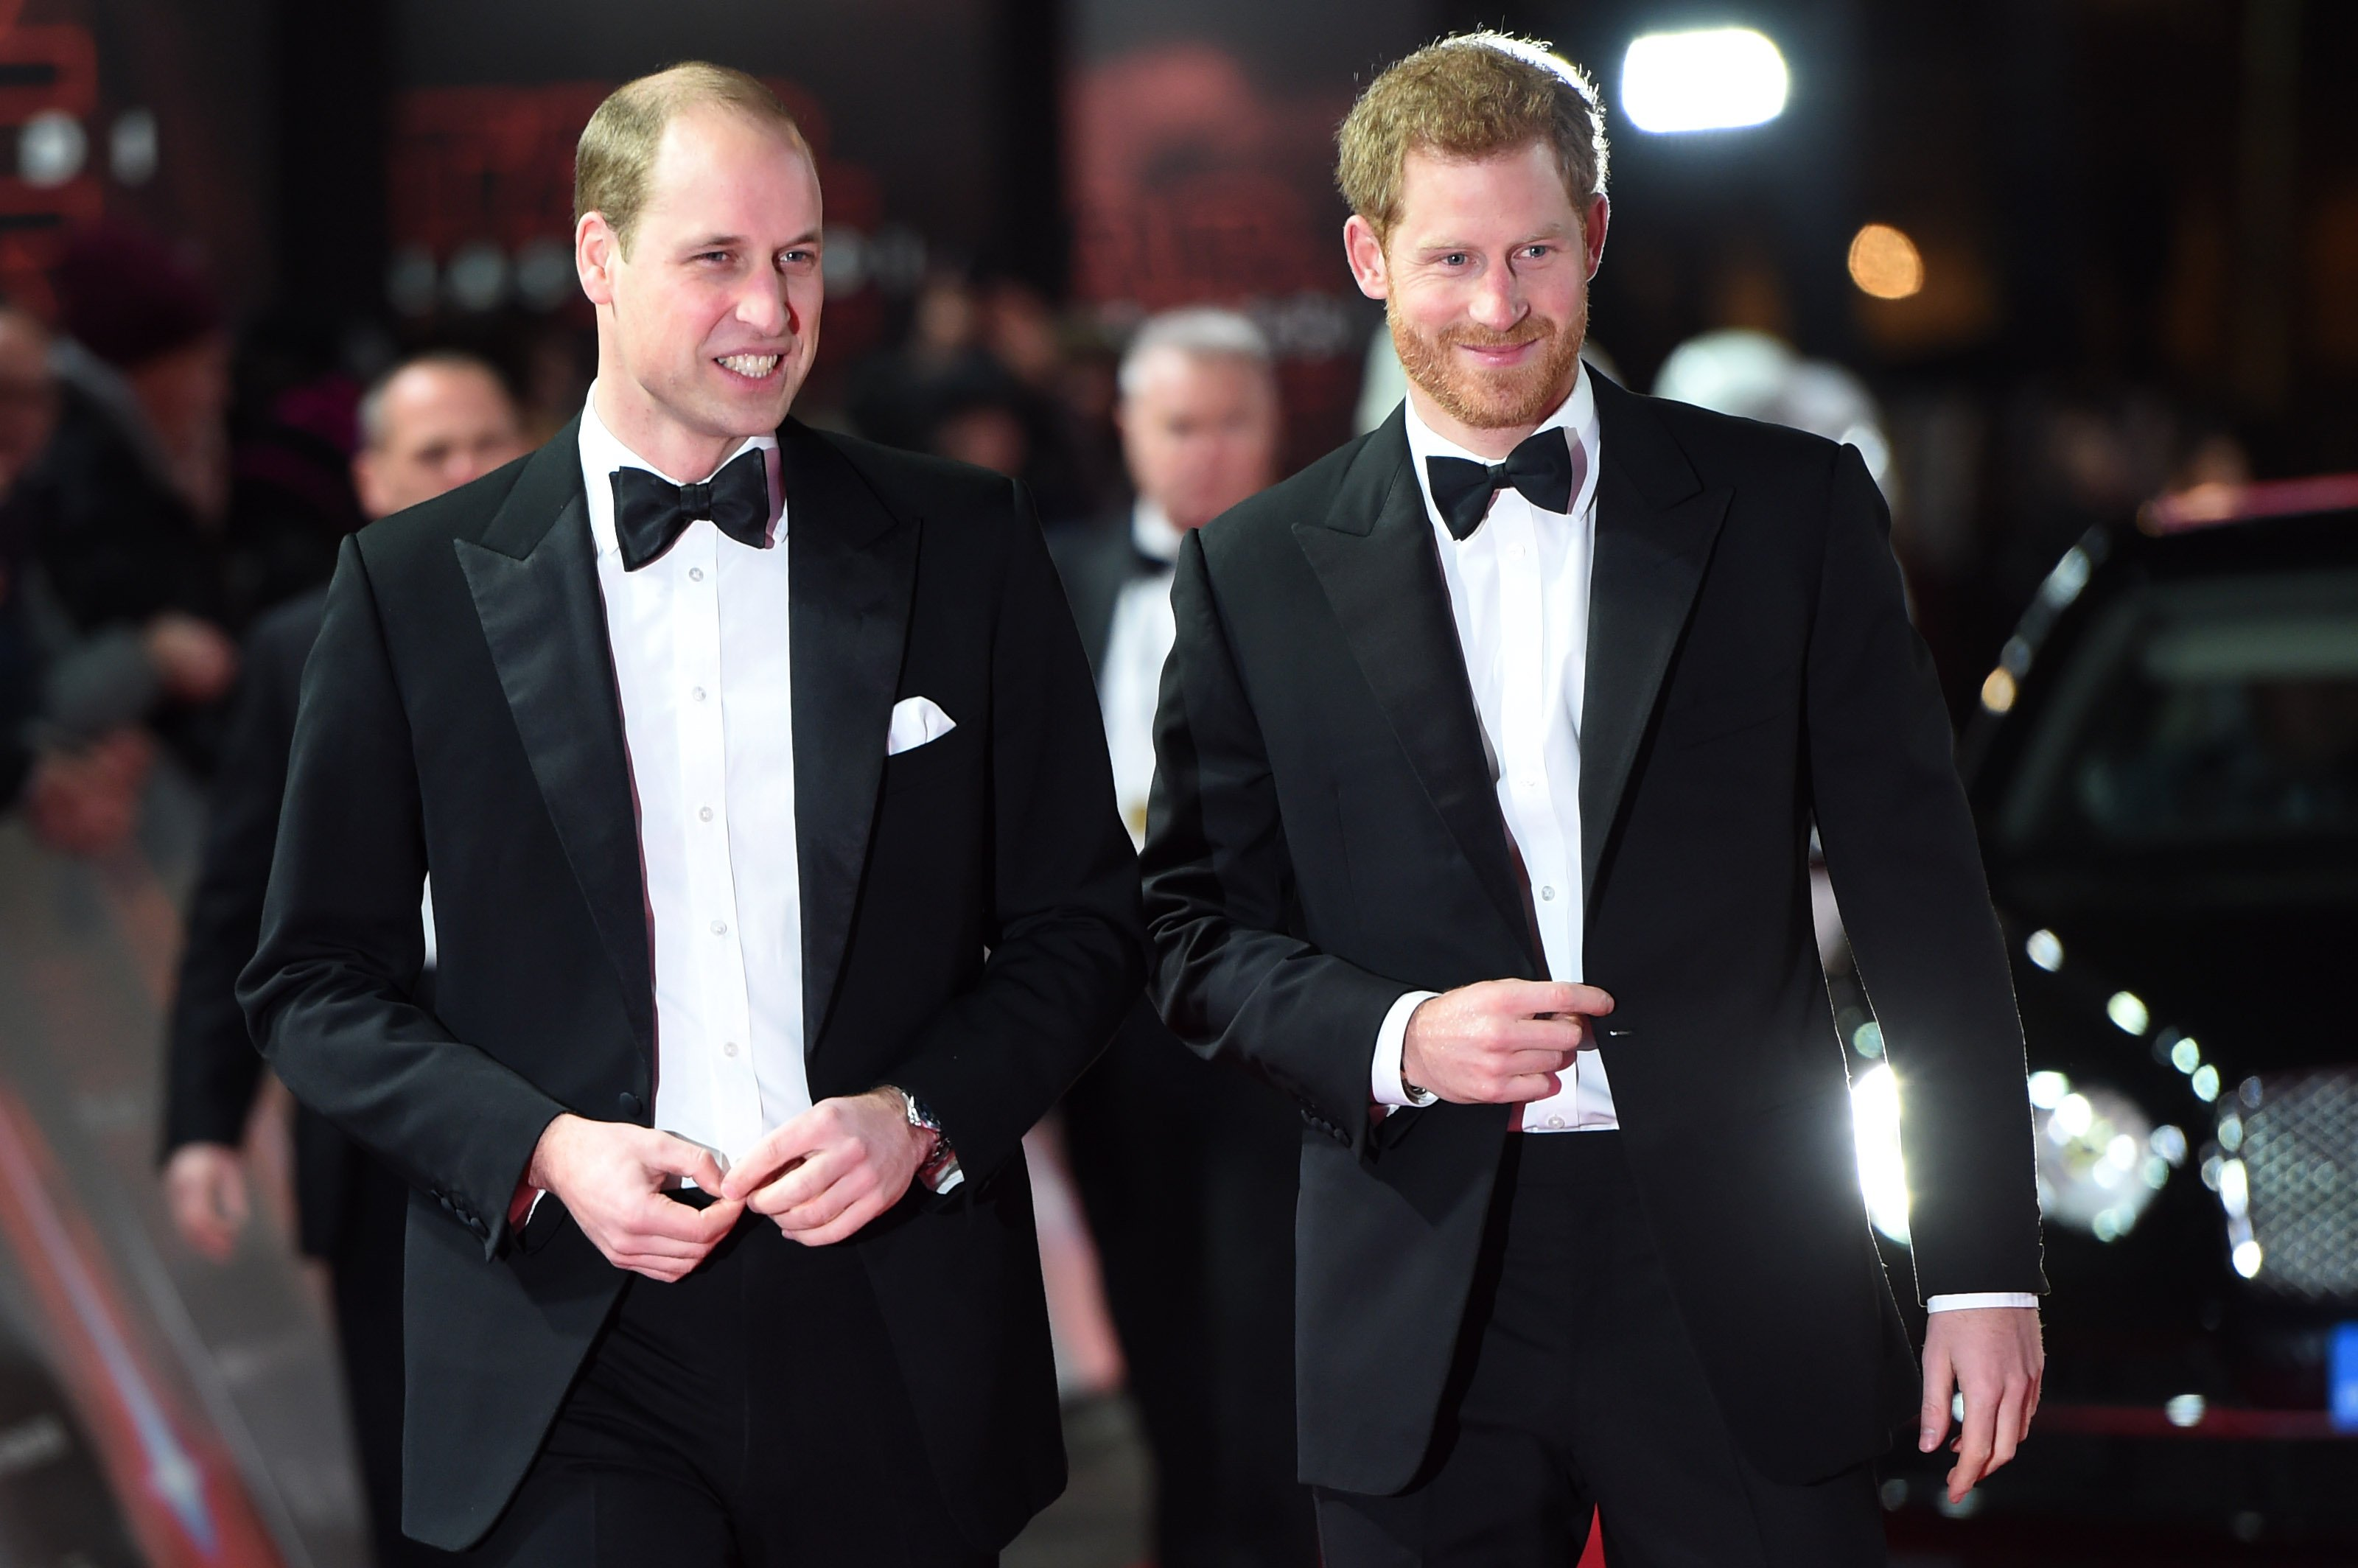 Prince William and Prince harry pictured at the European Premiere of 'Star Wars: The Last Jedi' at Royal Albert Hall, 2017, England. | Photo: Getty Images